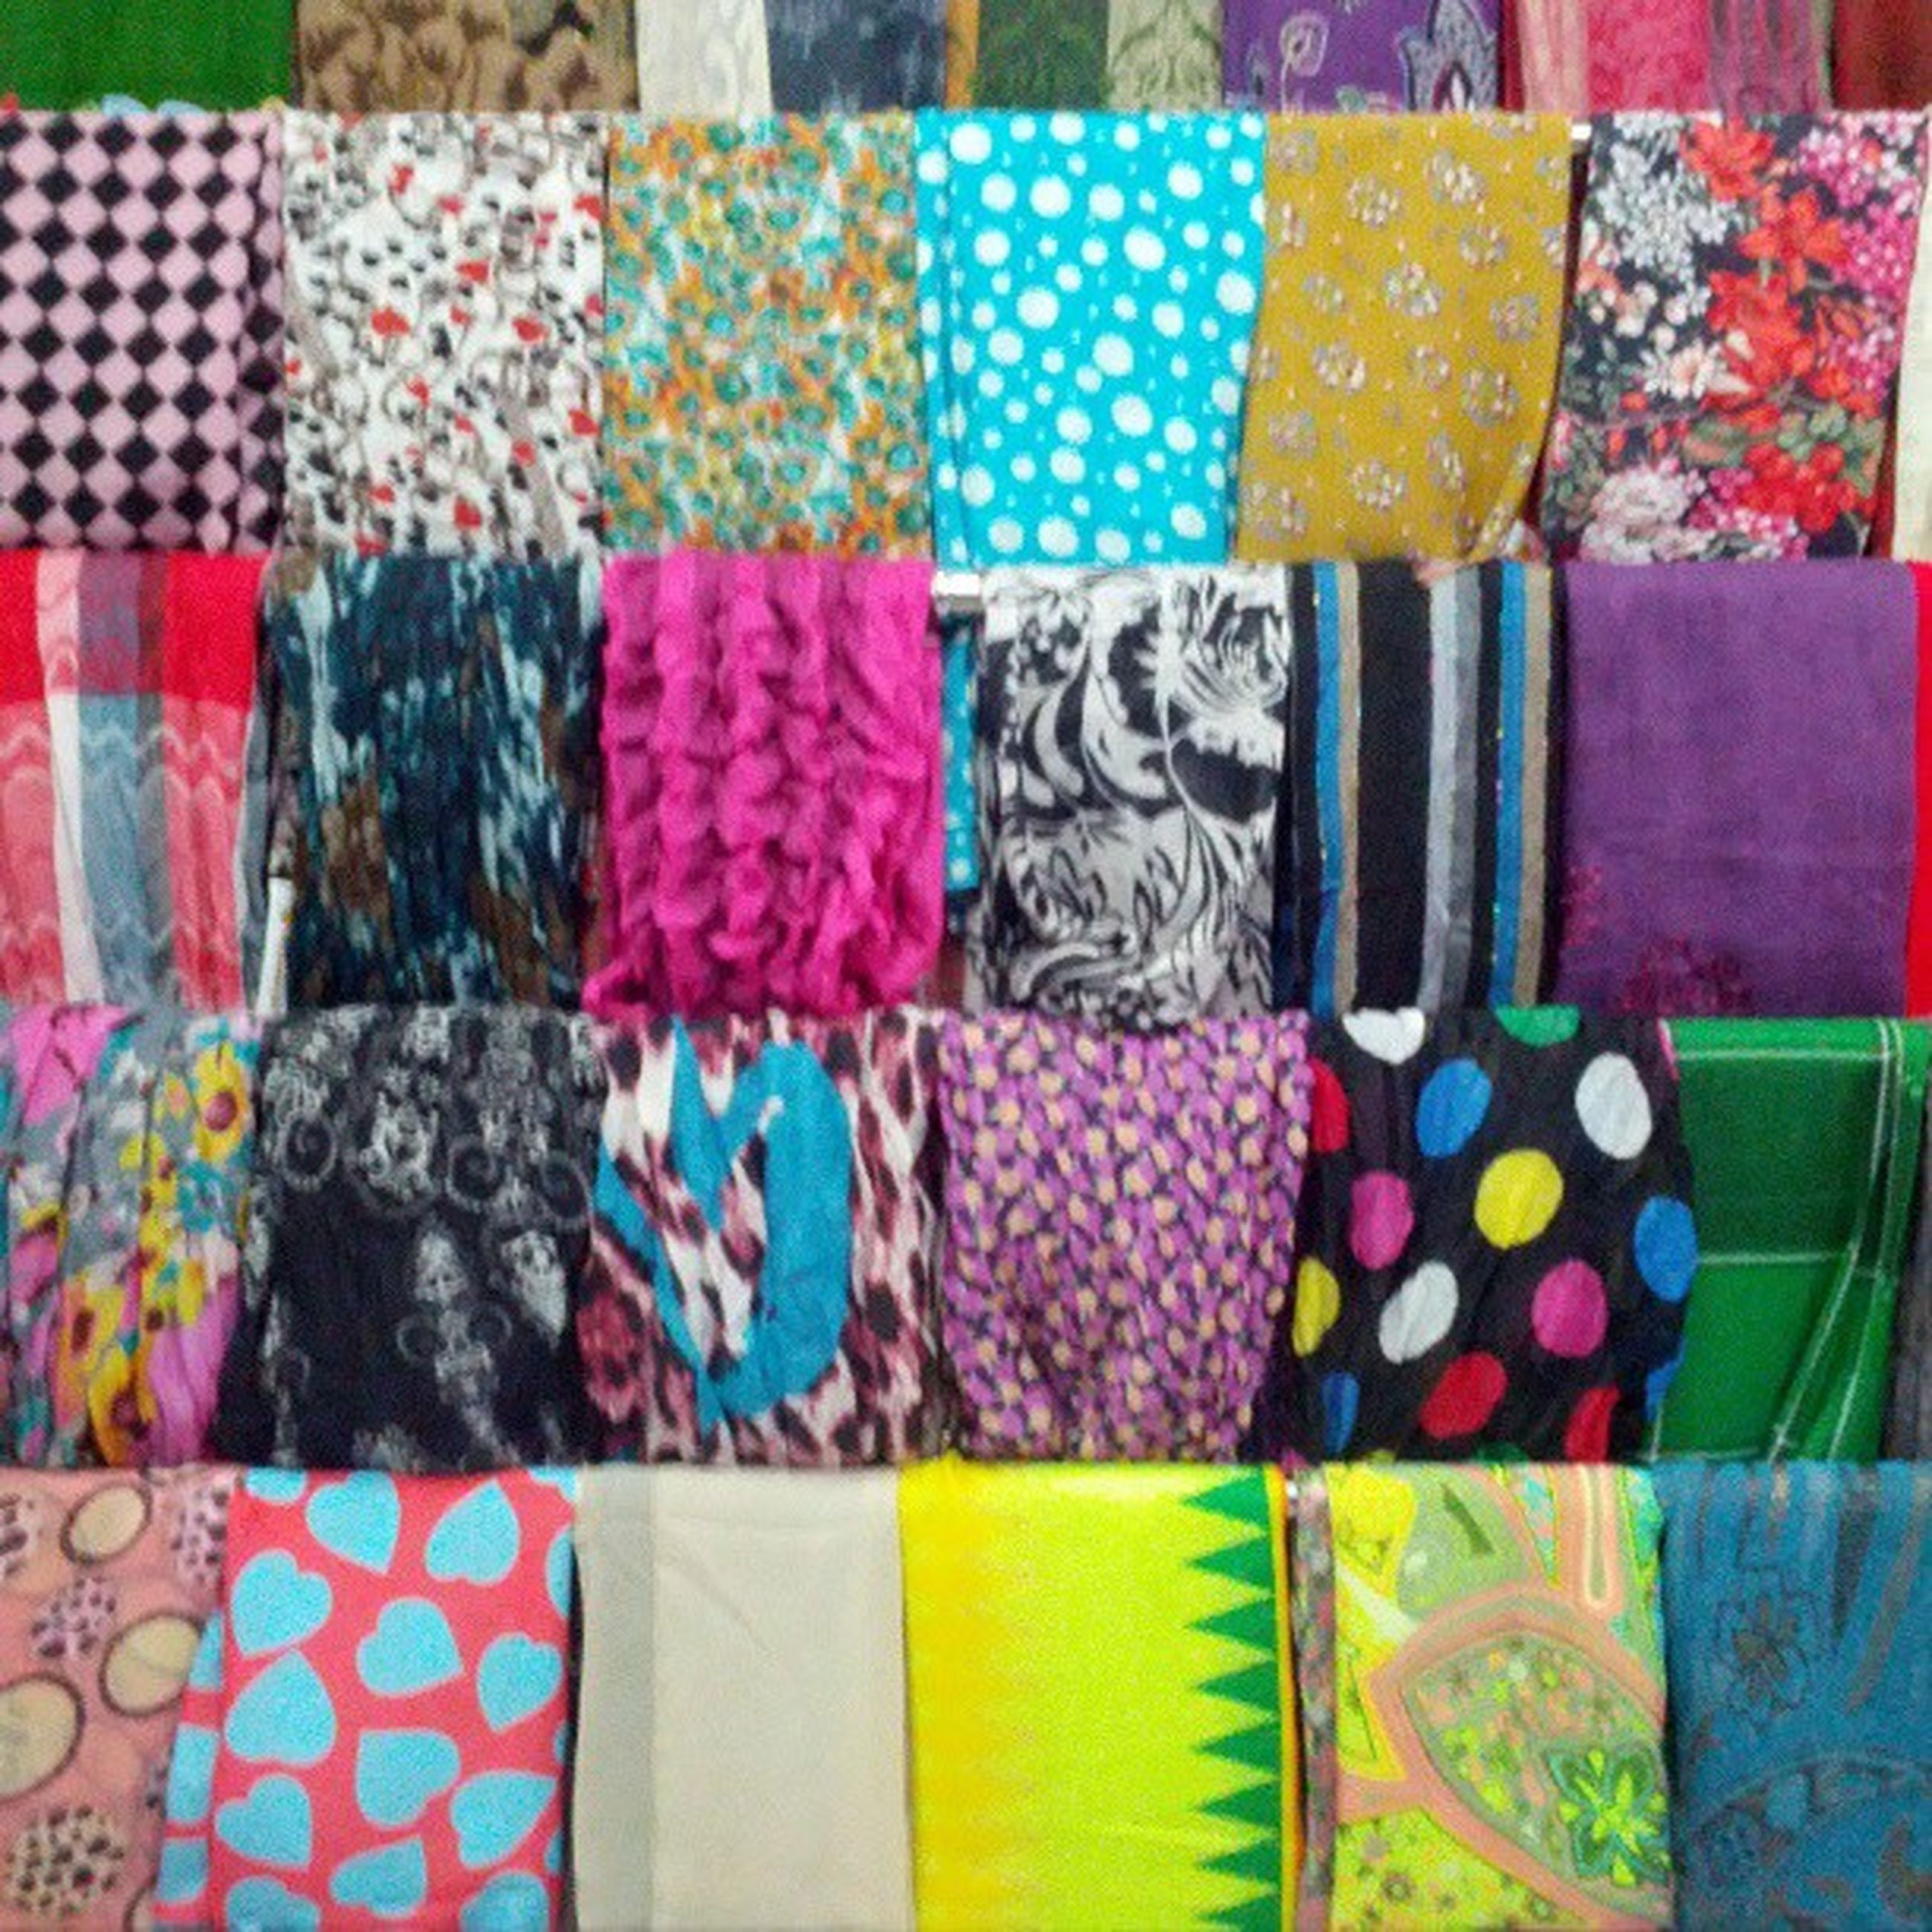 multi colored, variation, choice, colorful, indoors, large group of objects, for sale, textile, abundance, retail, in a row, still life, arrangement, fabric, full frame, collection, stack, side by side, pattern, order